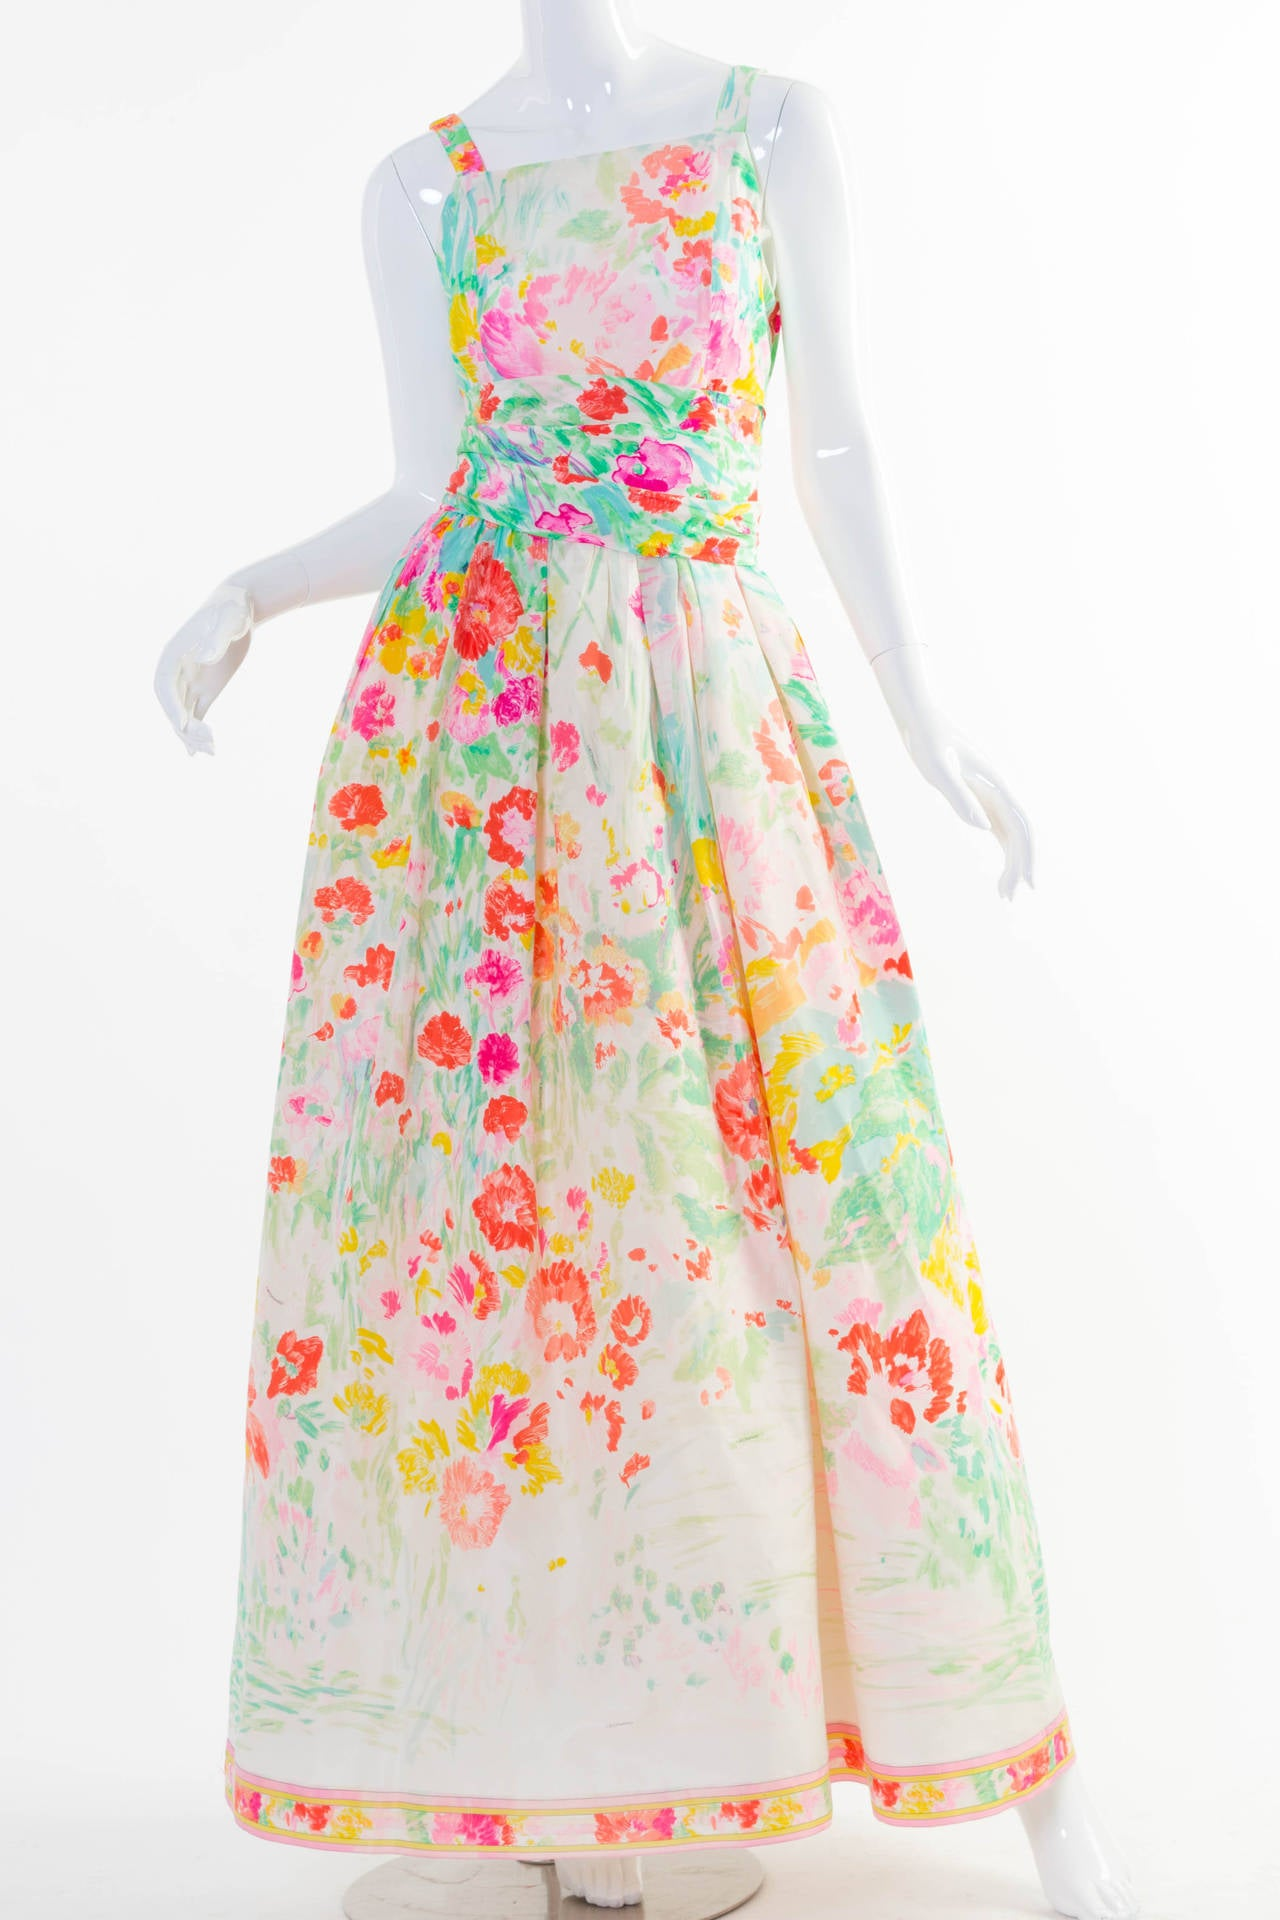 1990s Fabulous Leonard Paris Silk Floral Print Party Dress Gown 7